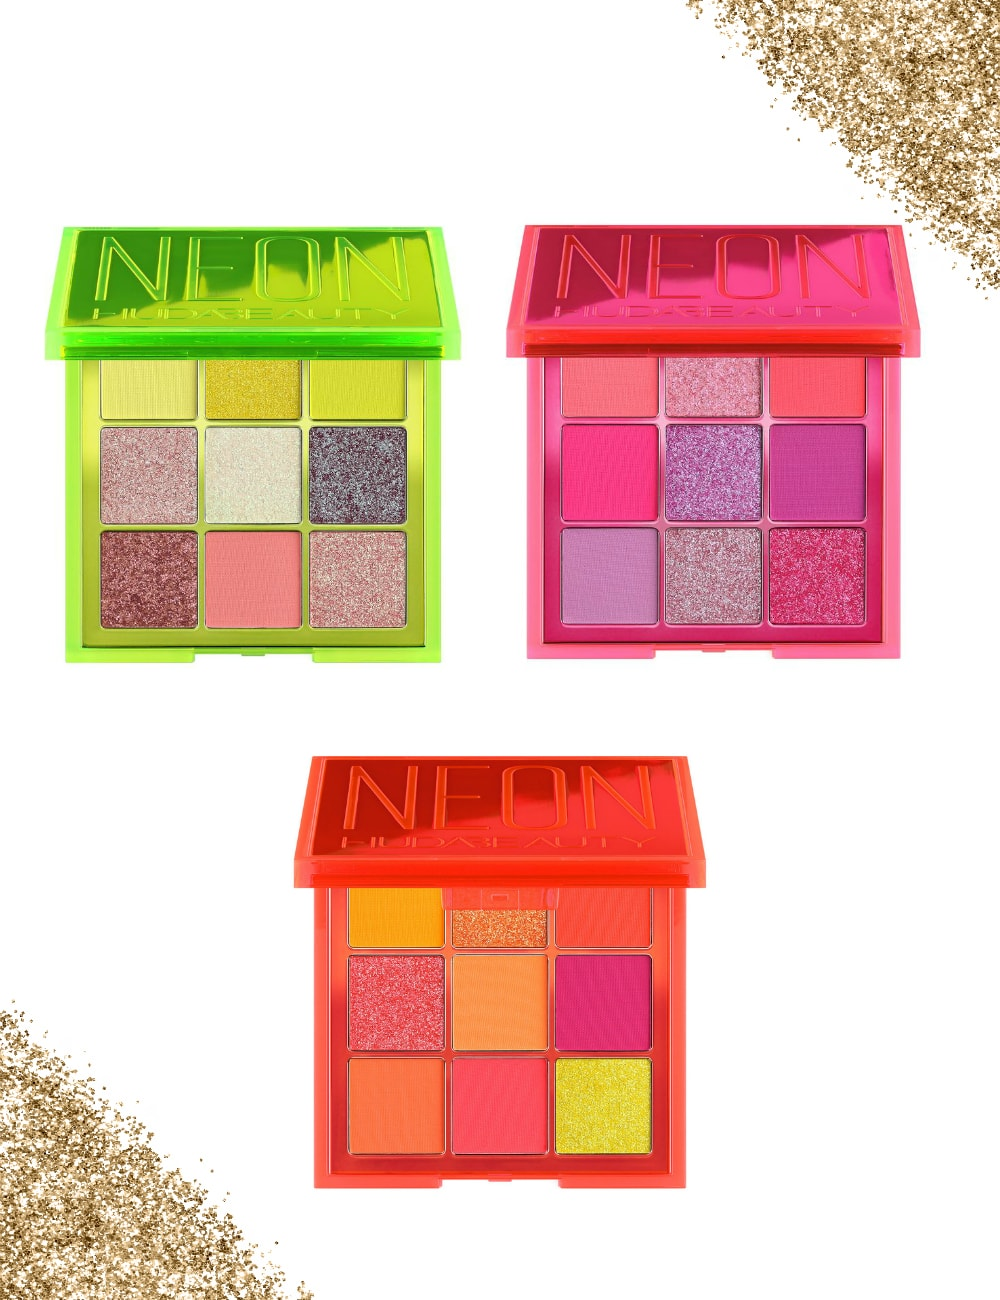 Huda Beauty Neon Obsessions Palettes | Info, Stockists + More